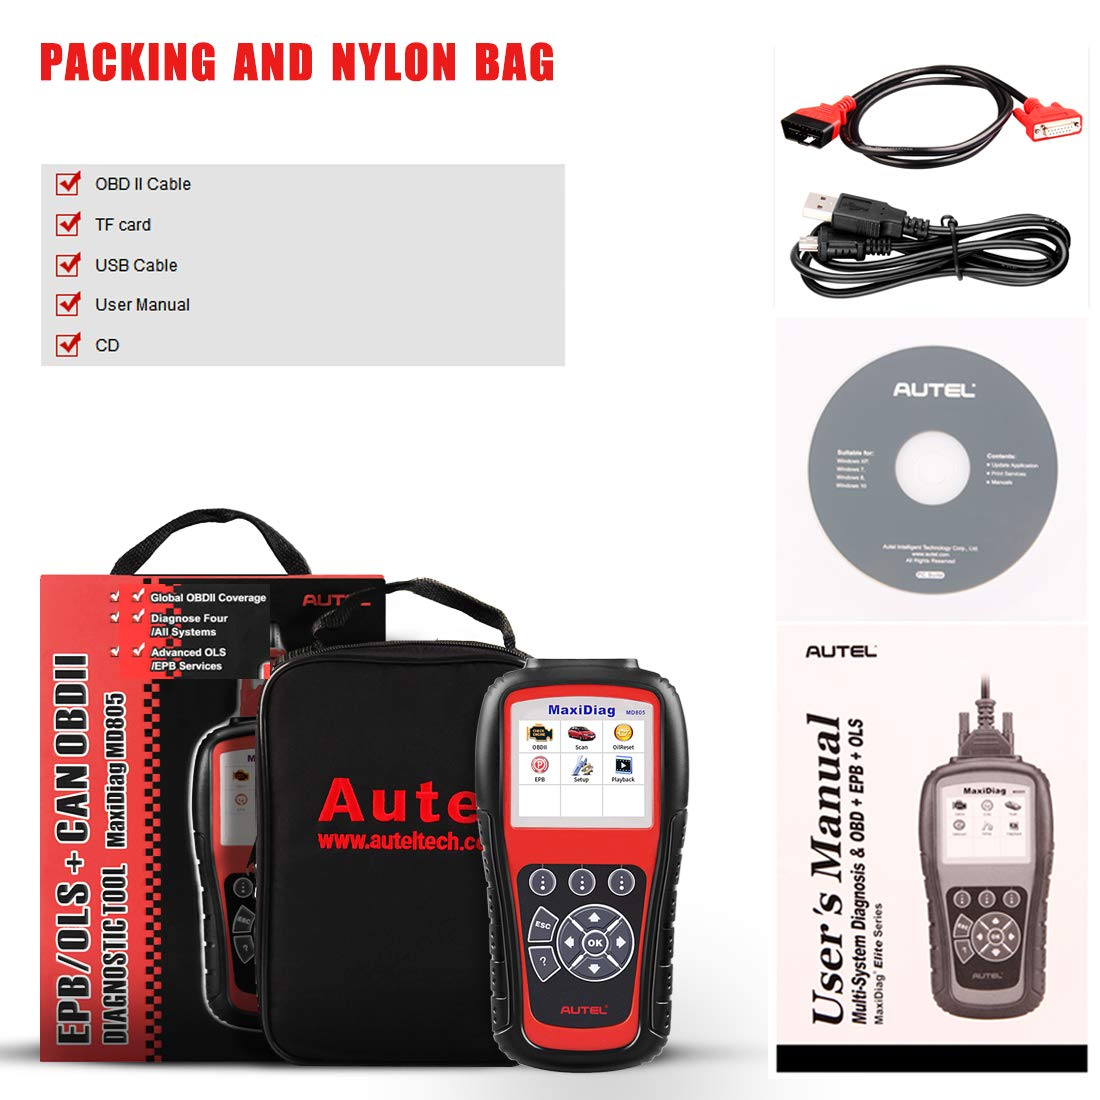 Autel MaxiDiag MD805 OBD2 Scanner Full System Diagnostic Tool with Engine, Transmission, ABS, Airbag, EPB, Oil Reset -Advanced Version of MD802 by Autel (Image #7)